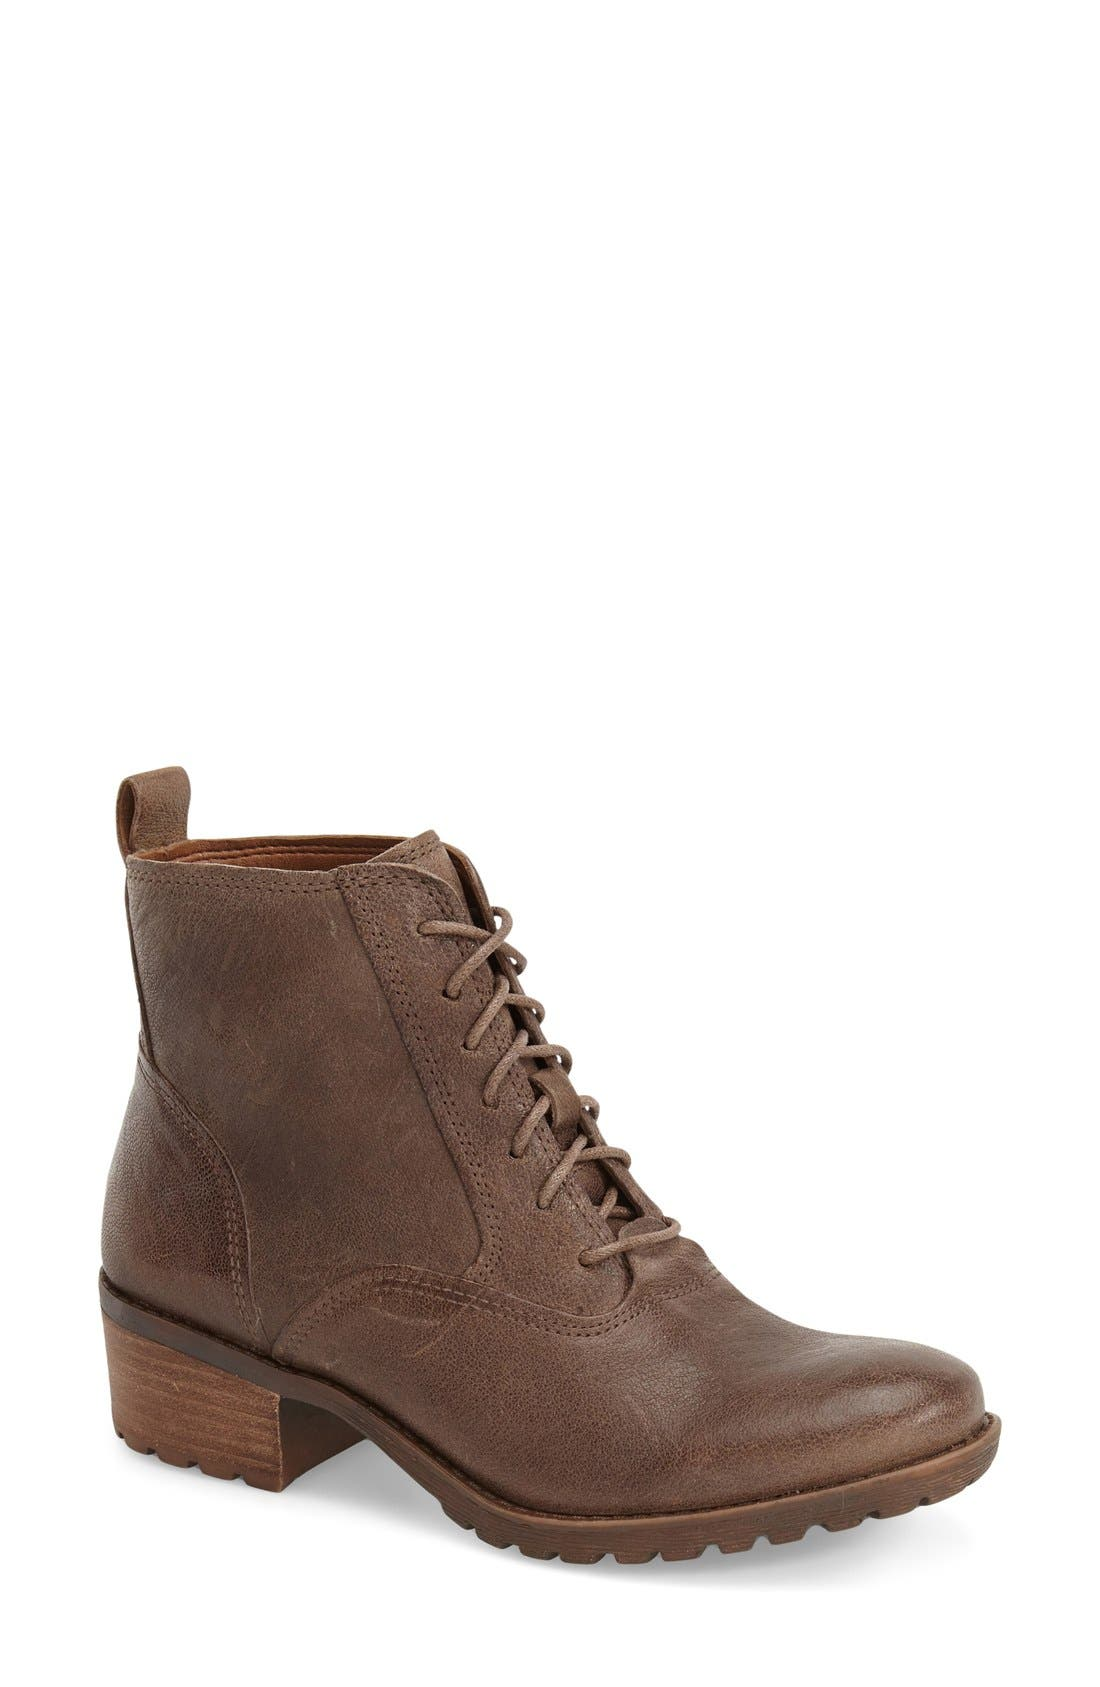 Alternate Image 1 Selected - Lucky Brand 'Giorgia' Lace Up Bootie (Women)